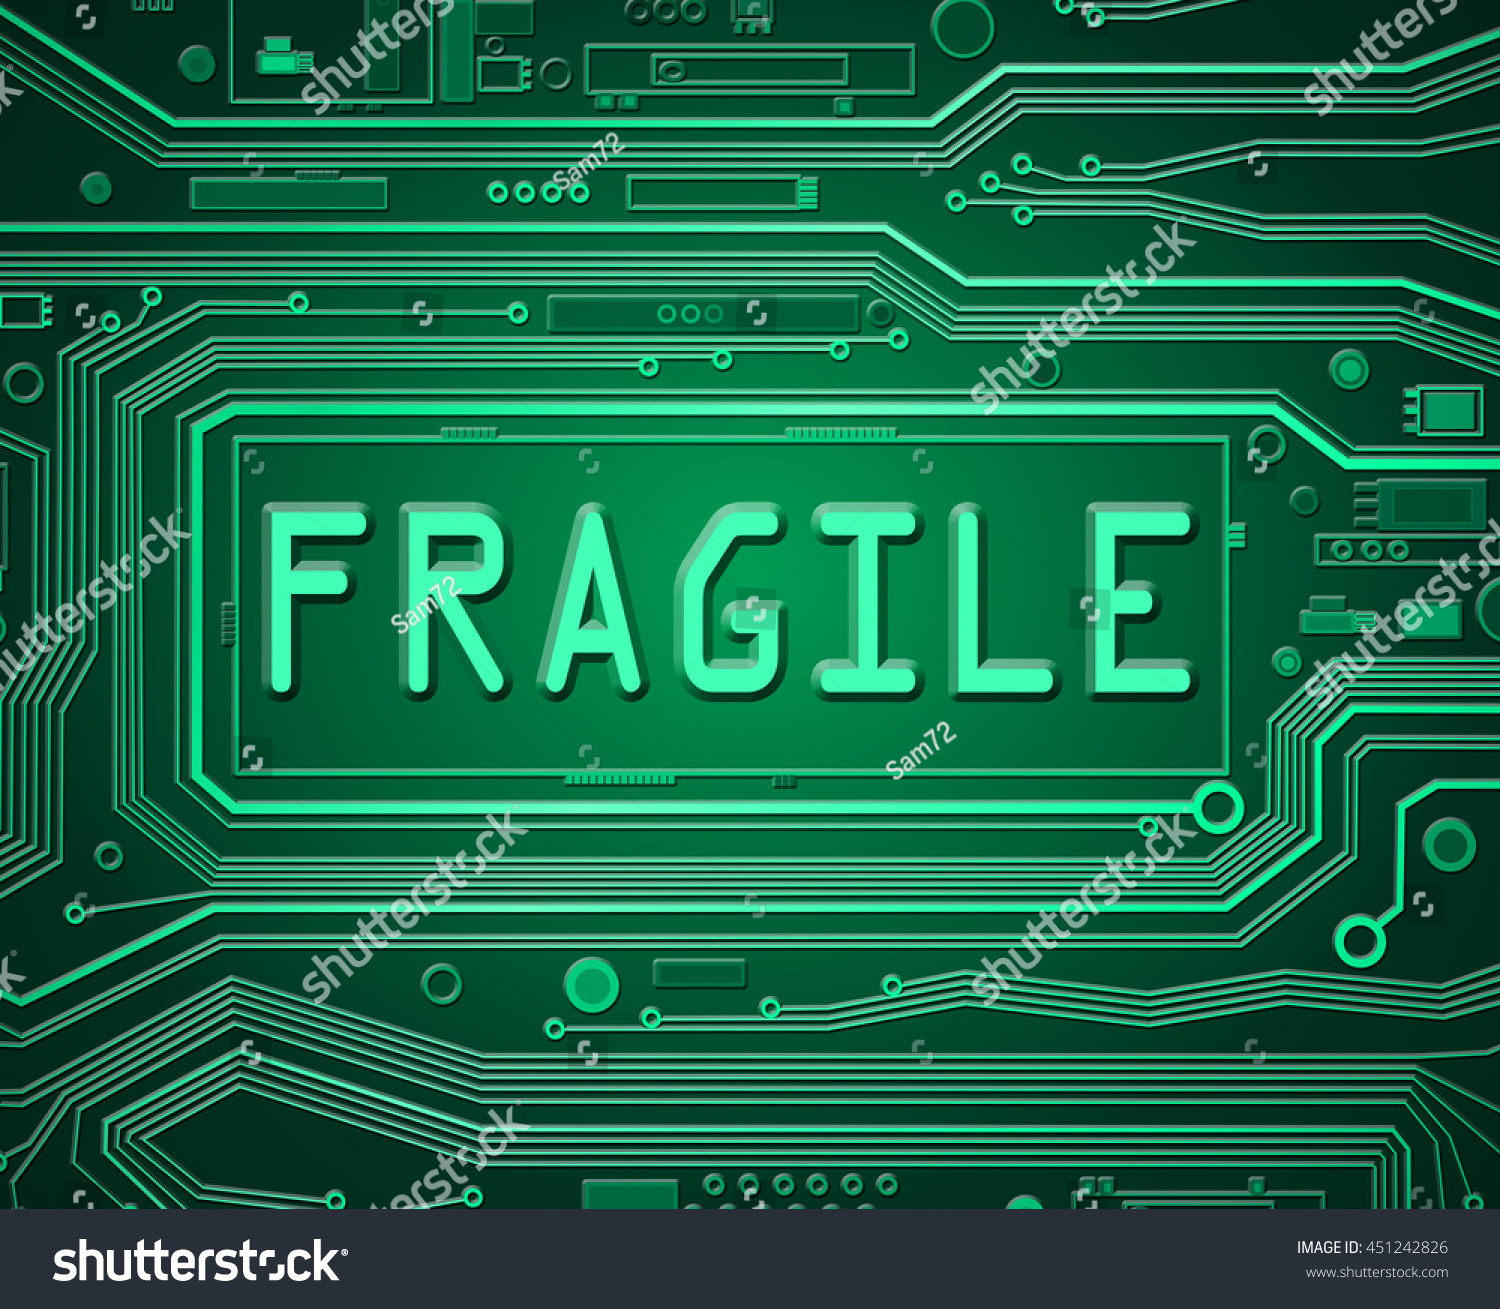 Abstract Style Illustration Depicting Printed Circuit Stock Electronic Board With Technology Against Fiber Components A Fragile Concept